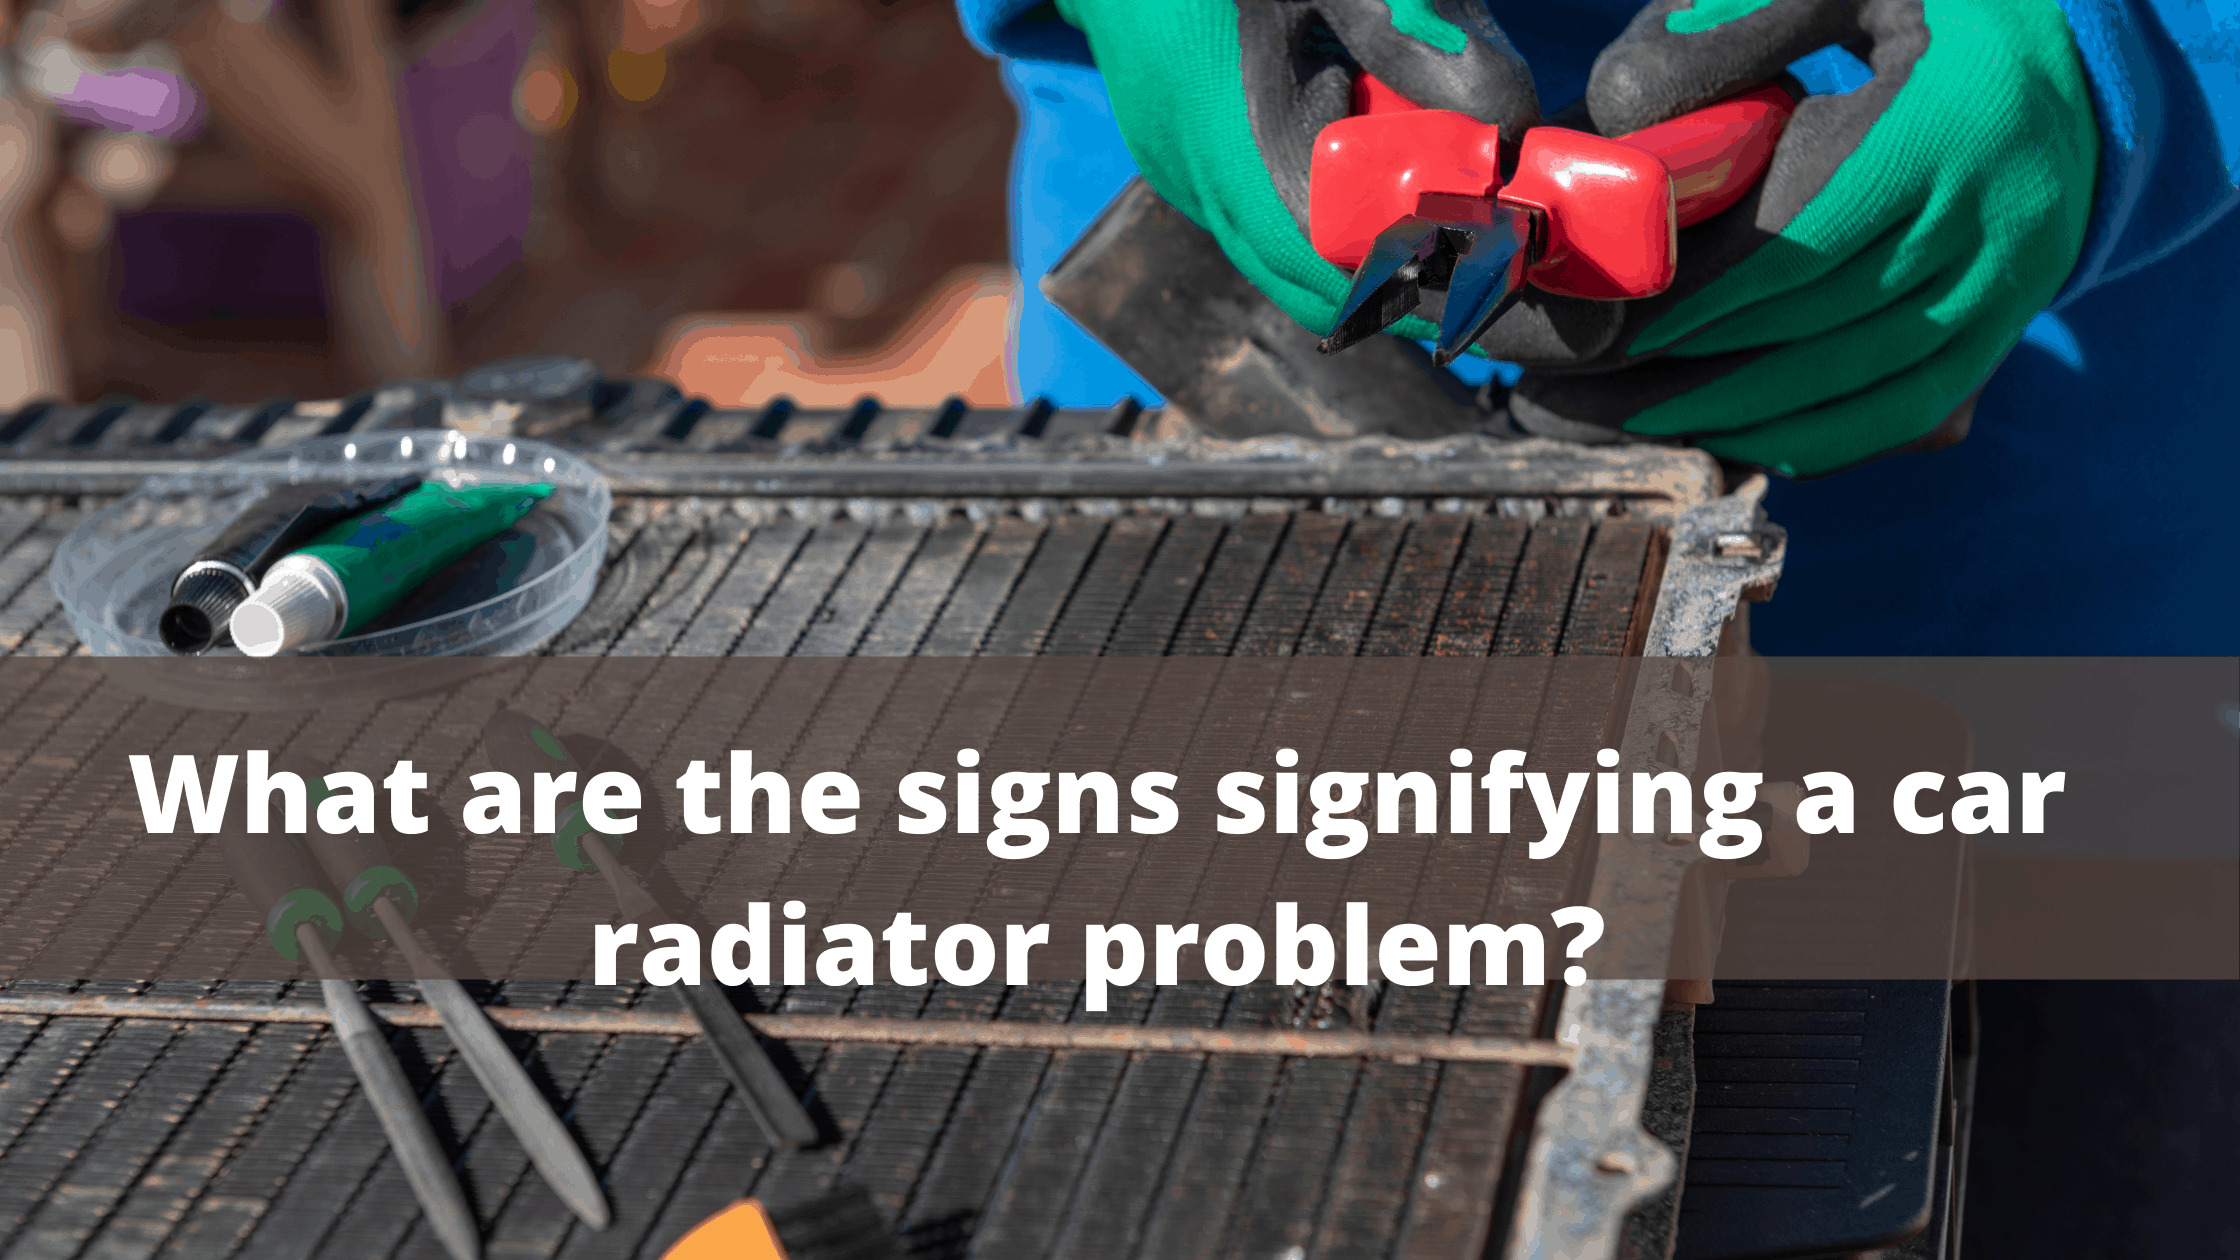 what are the signs signifying a car radiator problem